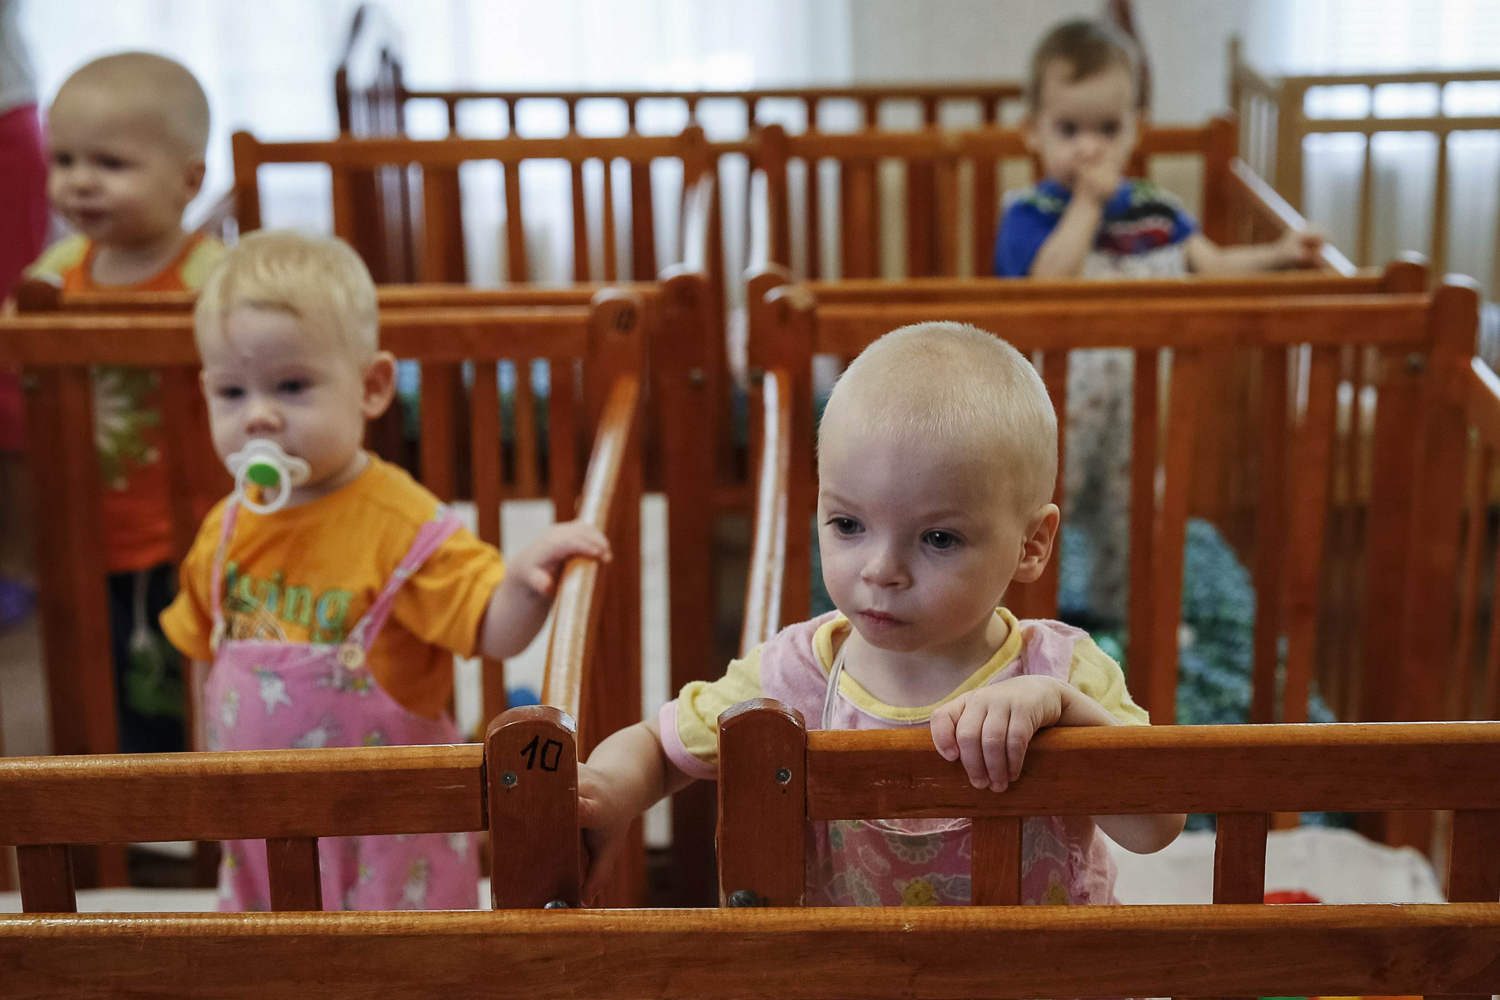 Aug. 30, 2014. Children who were transferred from orphanages in Donetsk and Makeyevka stand in their cribs in an orphanage in Kramatorsk. 76 children from orphanages in Donetsk and Makeyevka in eastern Ukraine were sent to Kramatorsk due to fighting between the Ukrainian army and pro-Russian separatists.